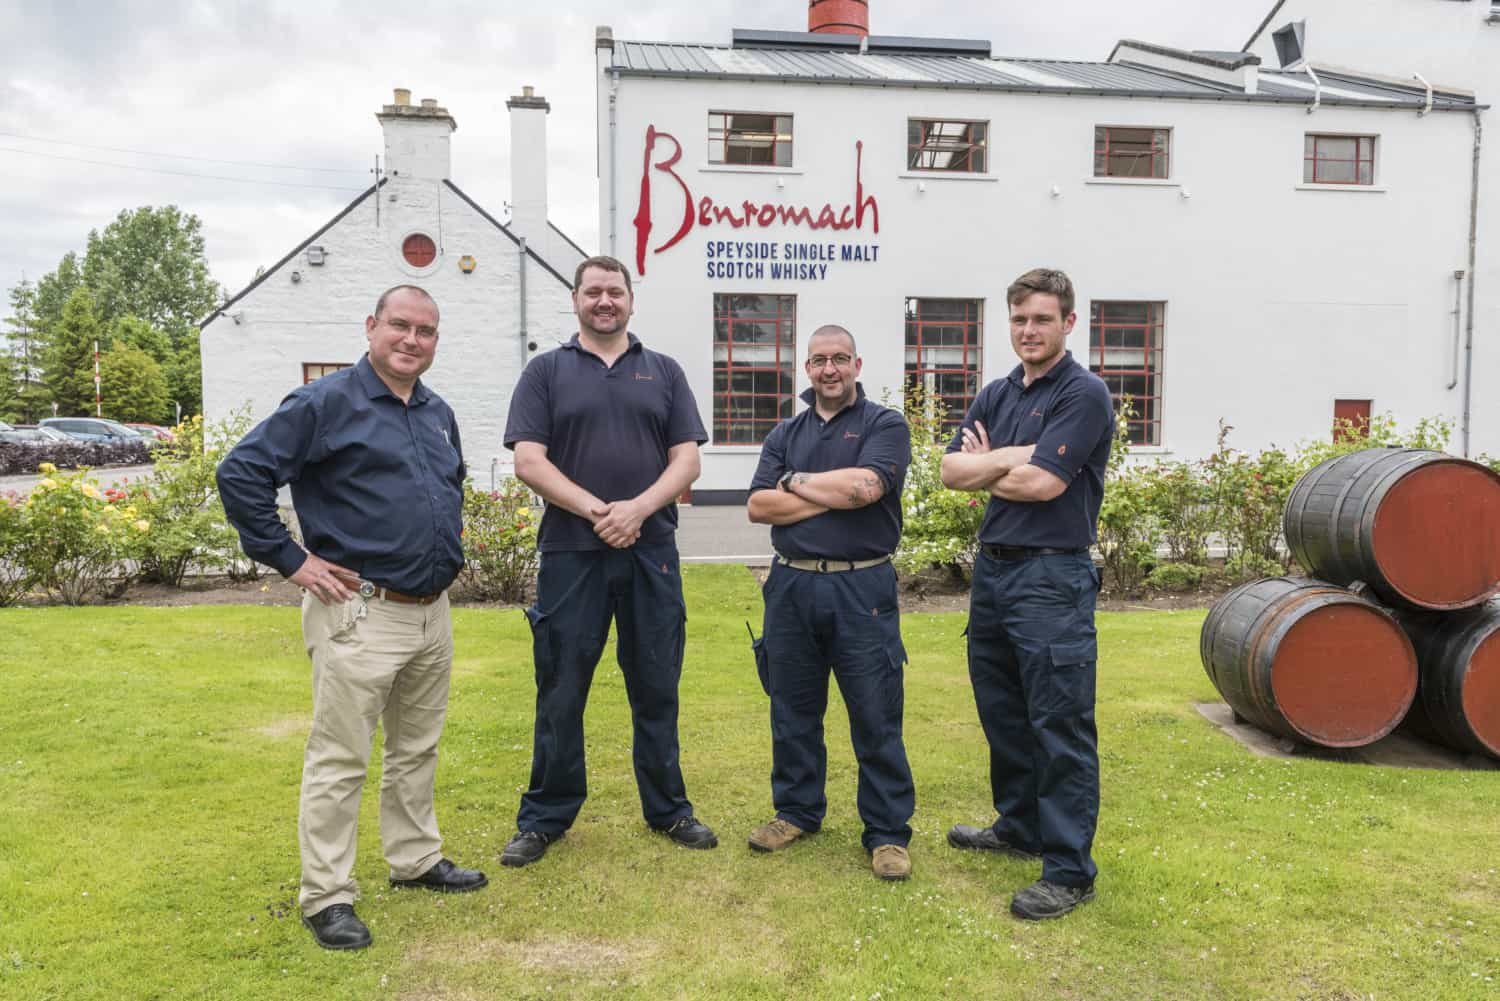 Benromach Fourth Distiller